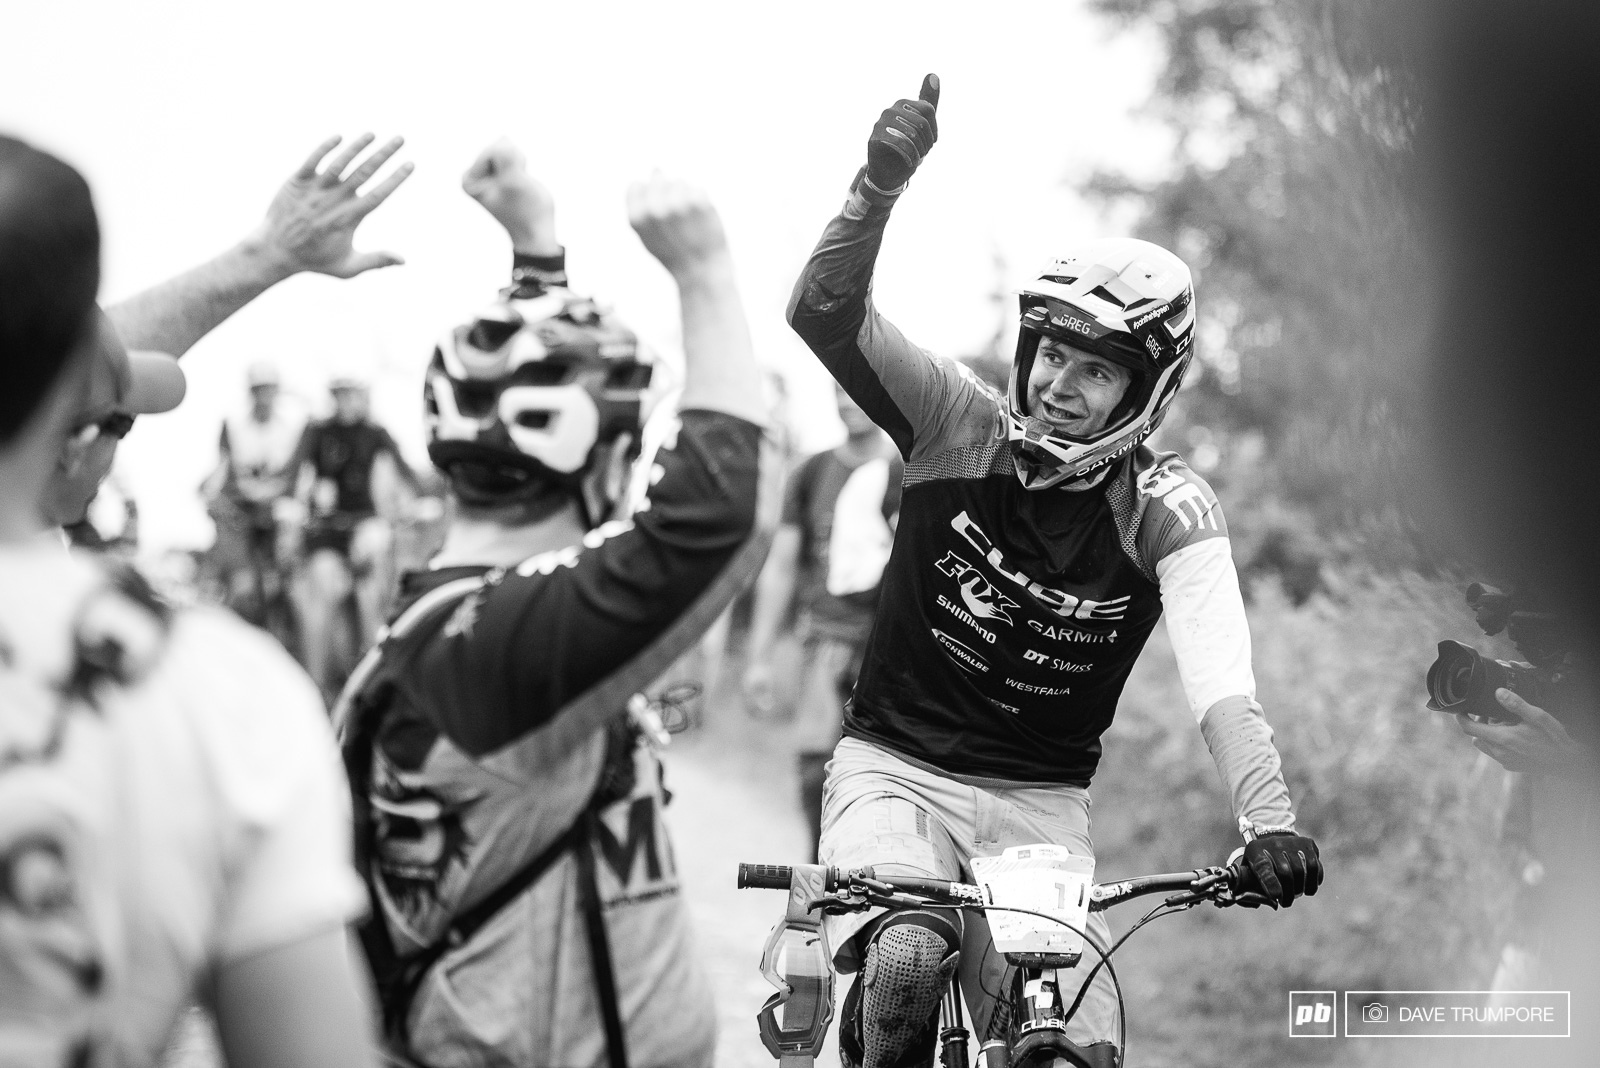 Greg Callghan will always be the people champion in Ireland whether he finishes first or last.